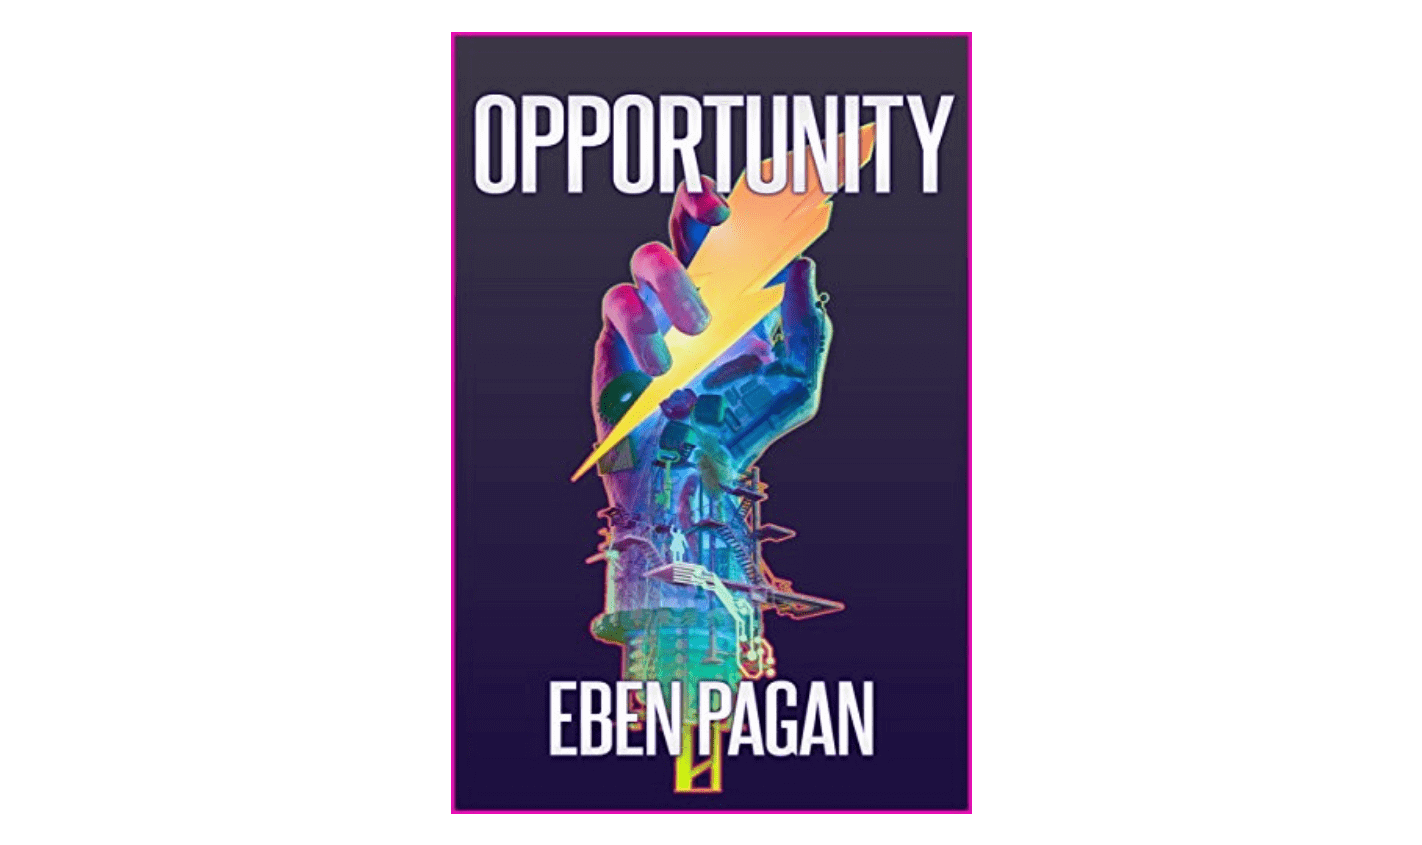 Opportunity the book